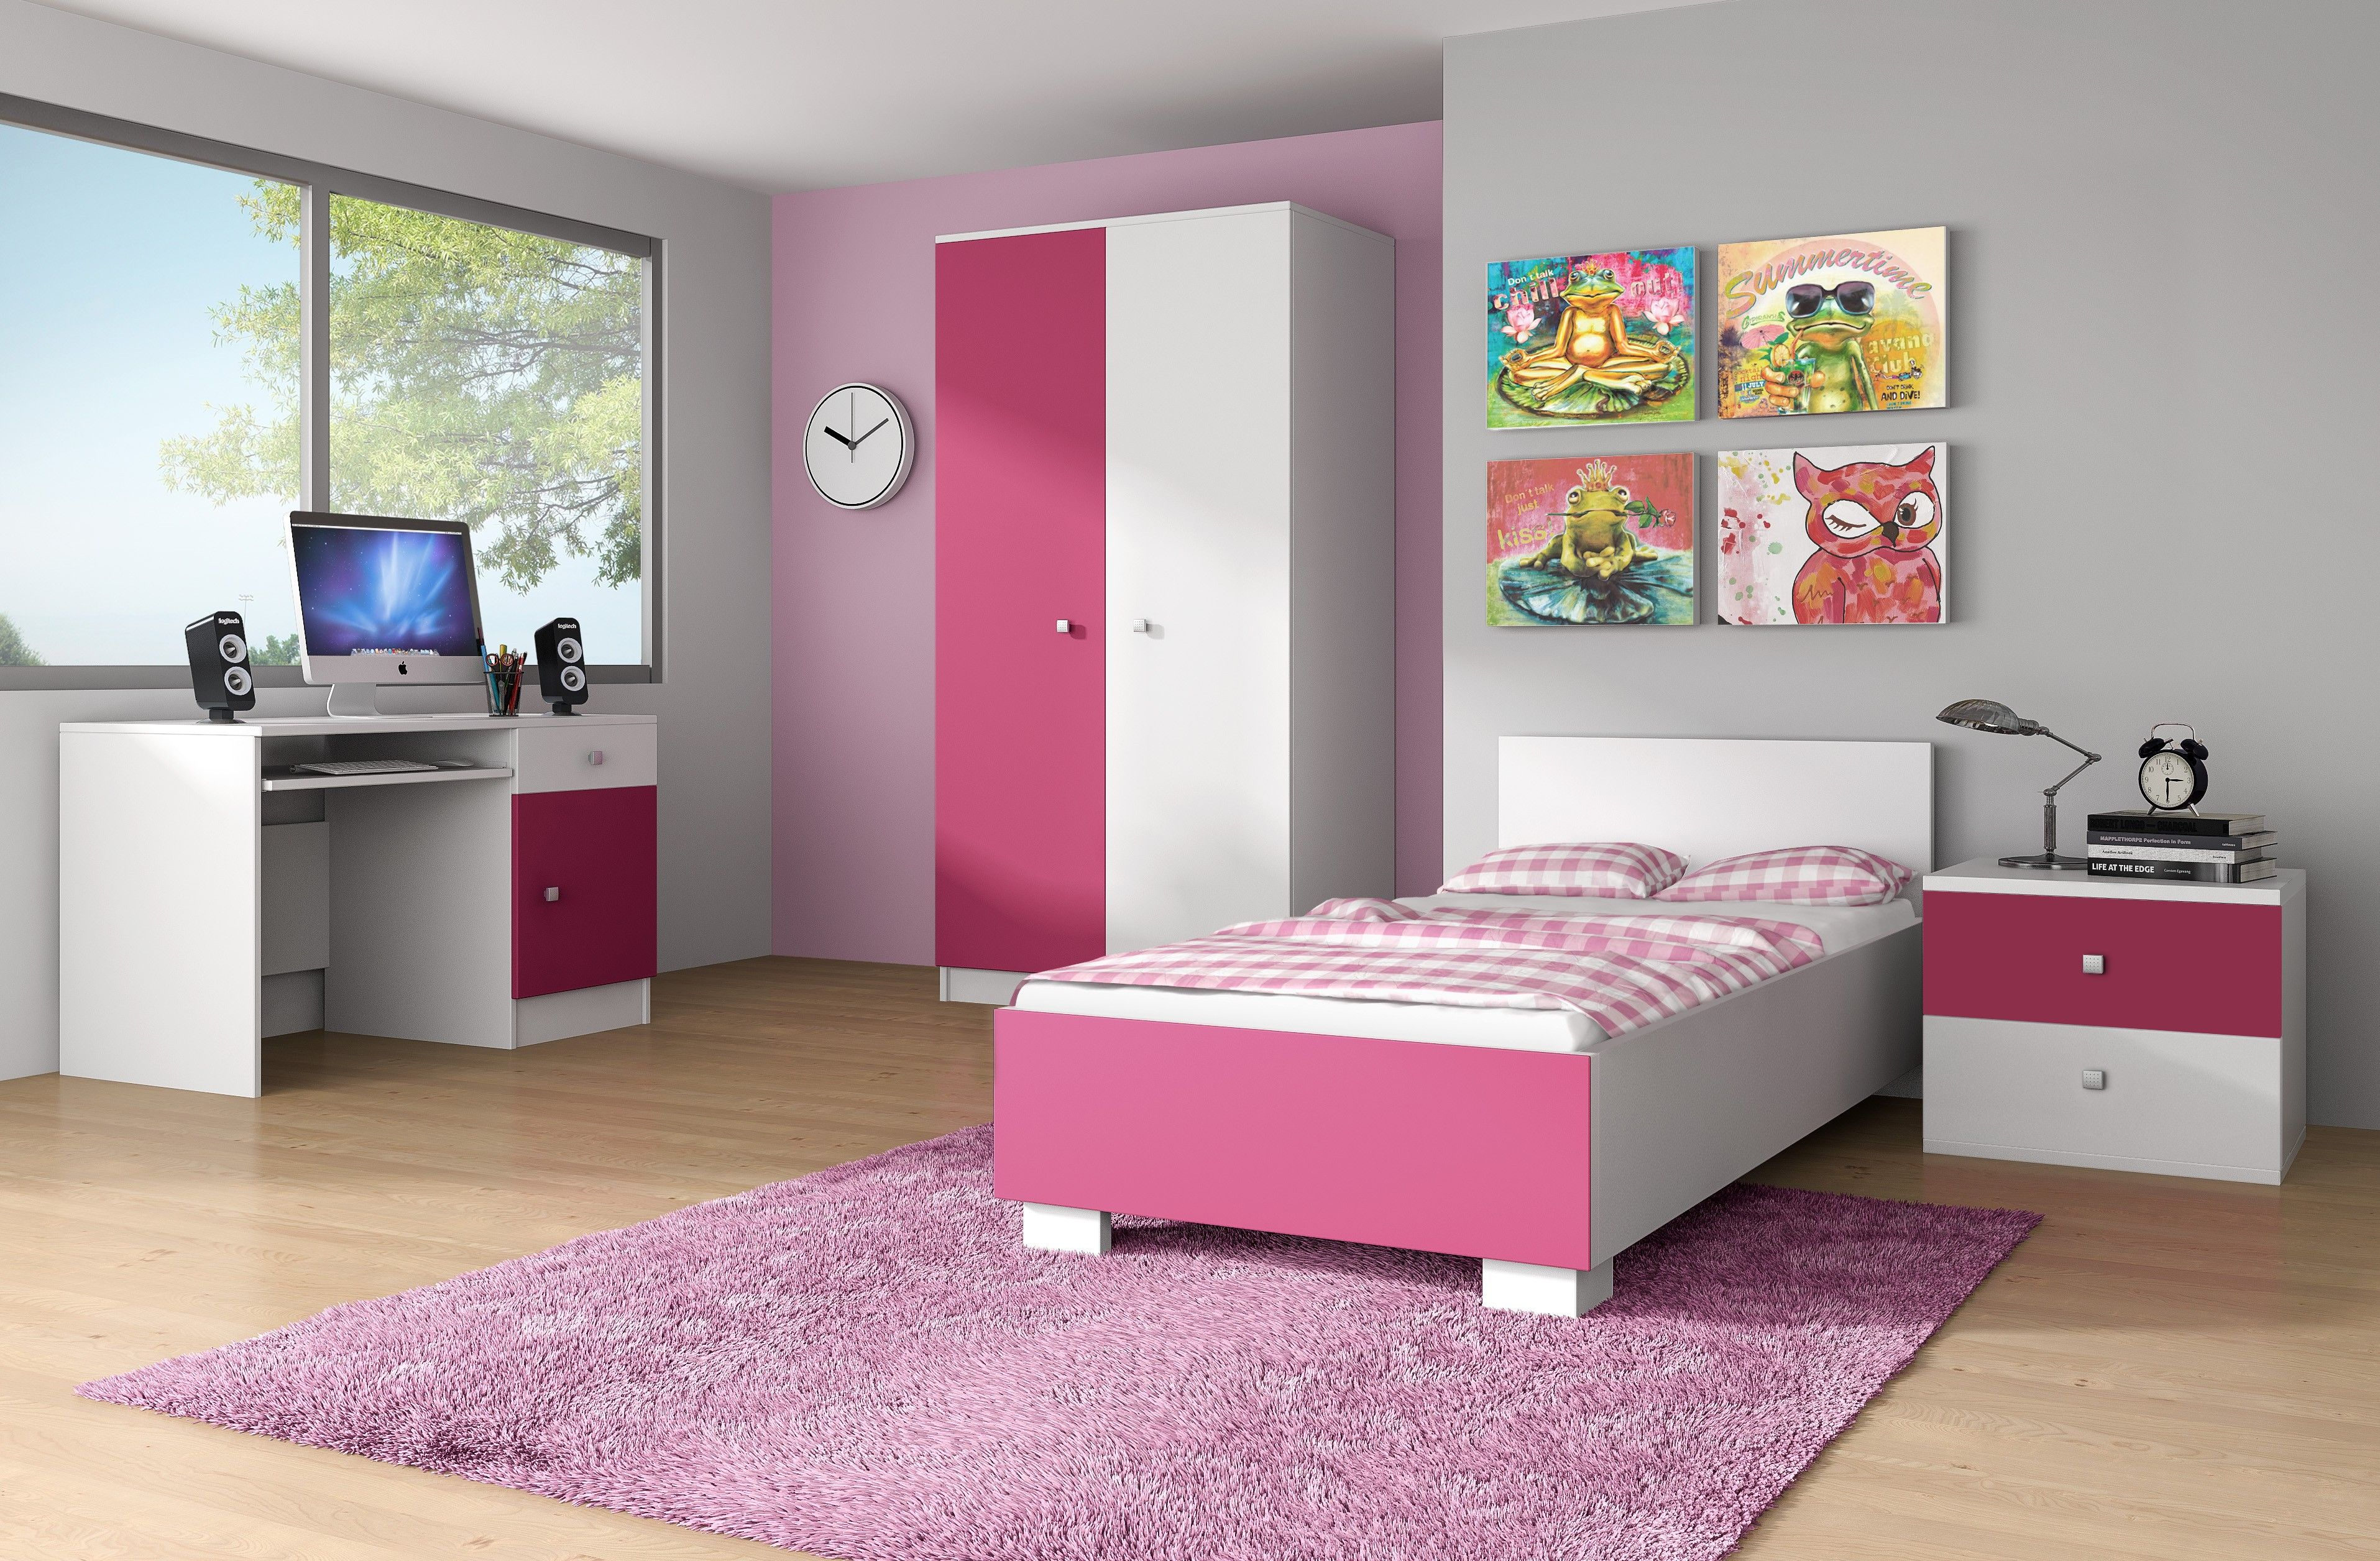 ide dco chambre ado fille 12 ans best charmant idee deco | bed ...